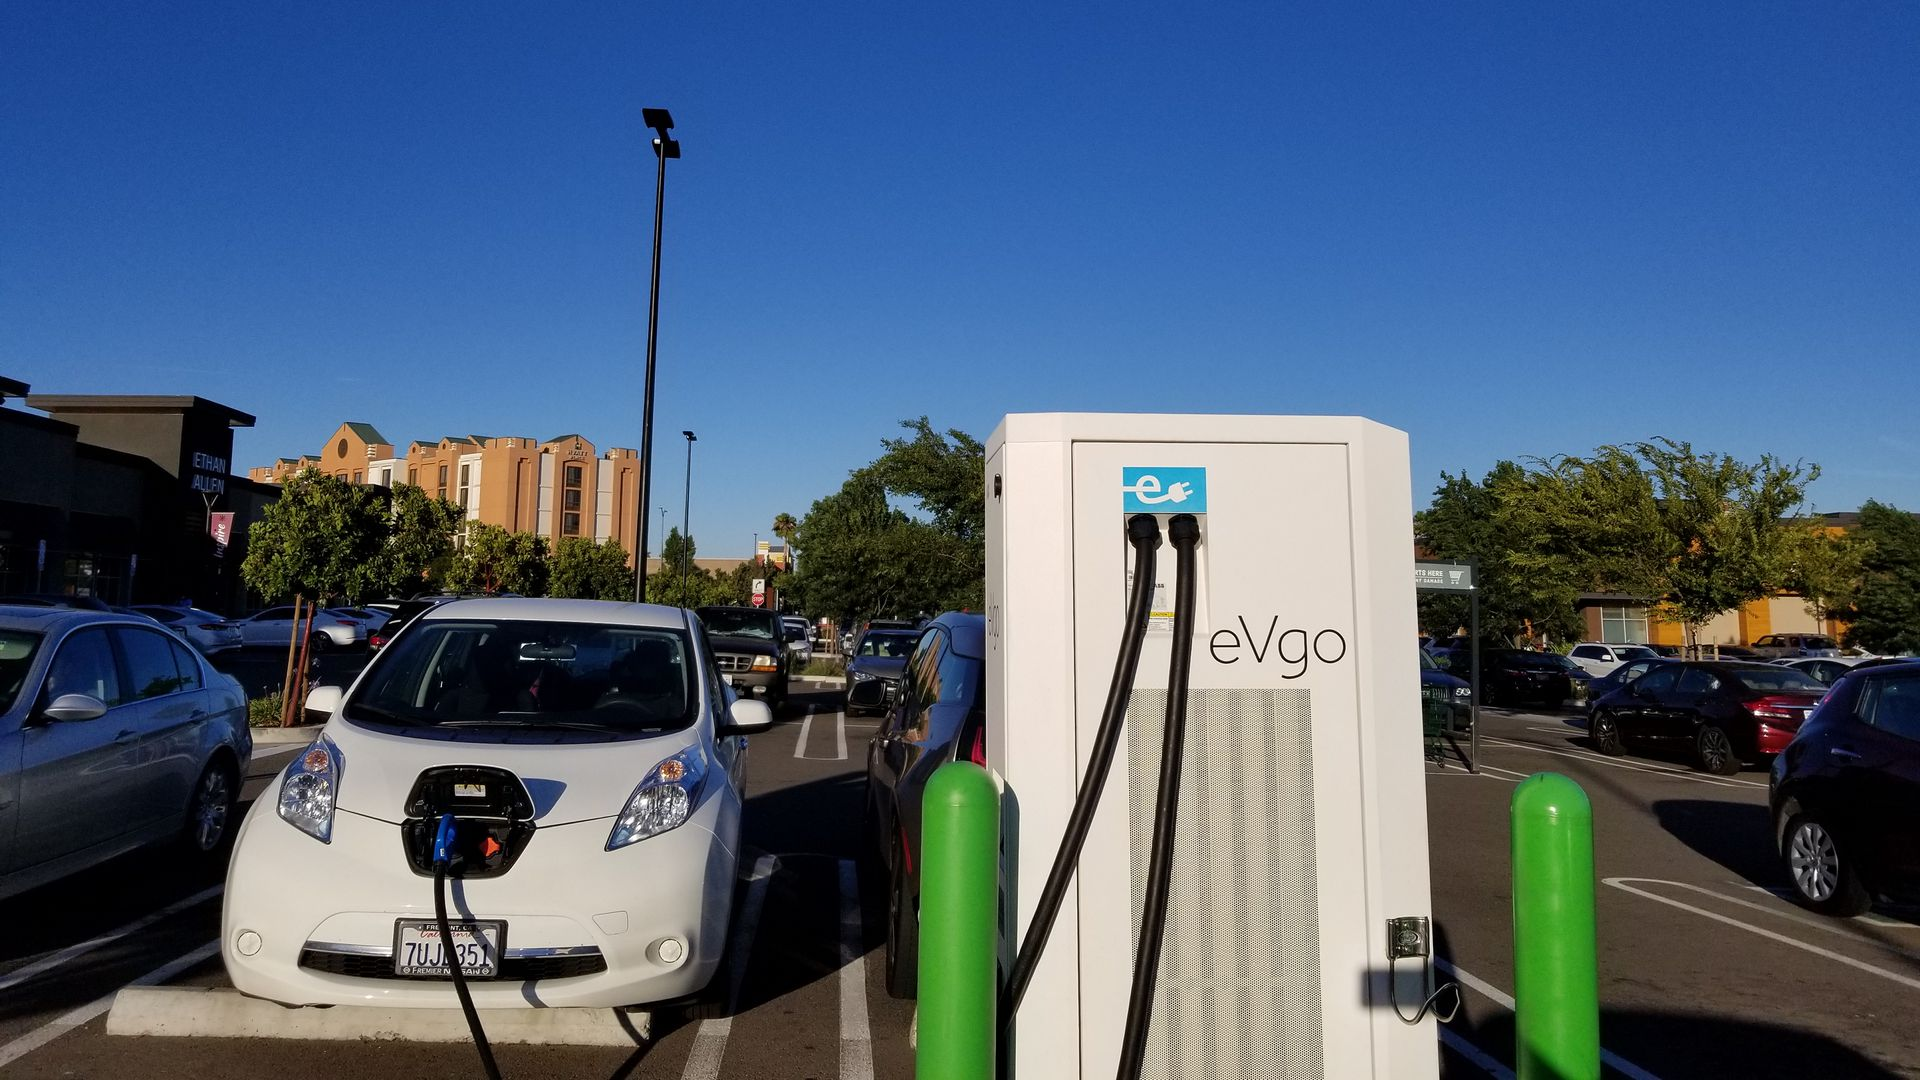 In this image, an electric car is plugged into a charger in a sunny parking lot